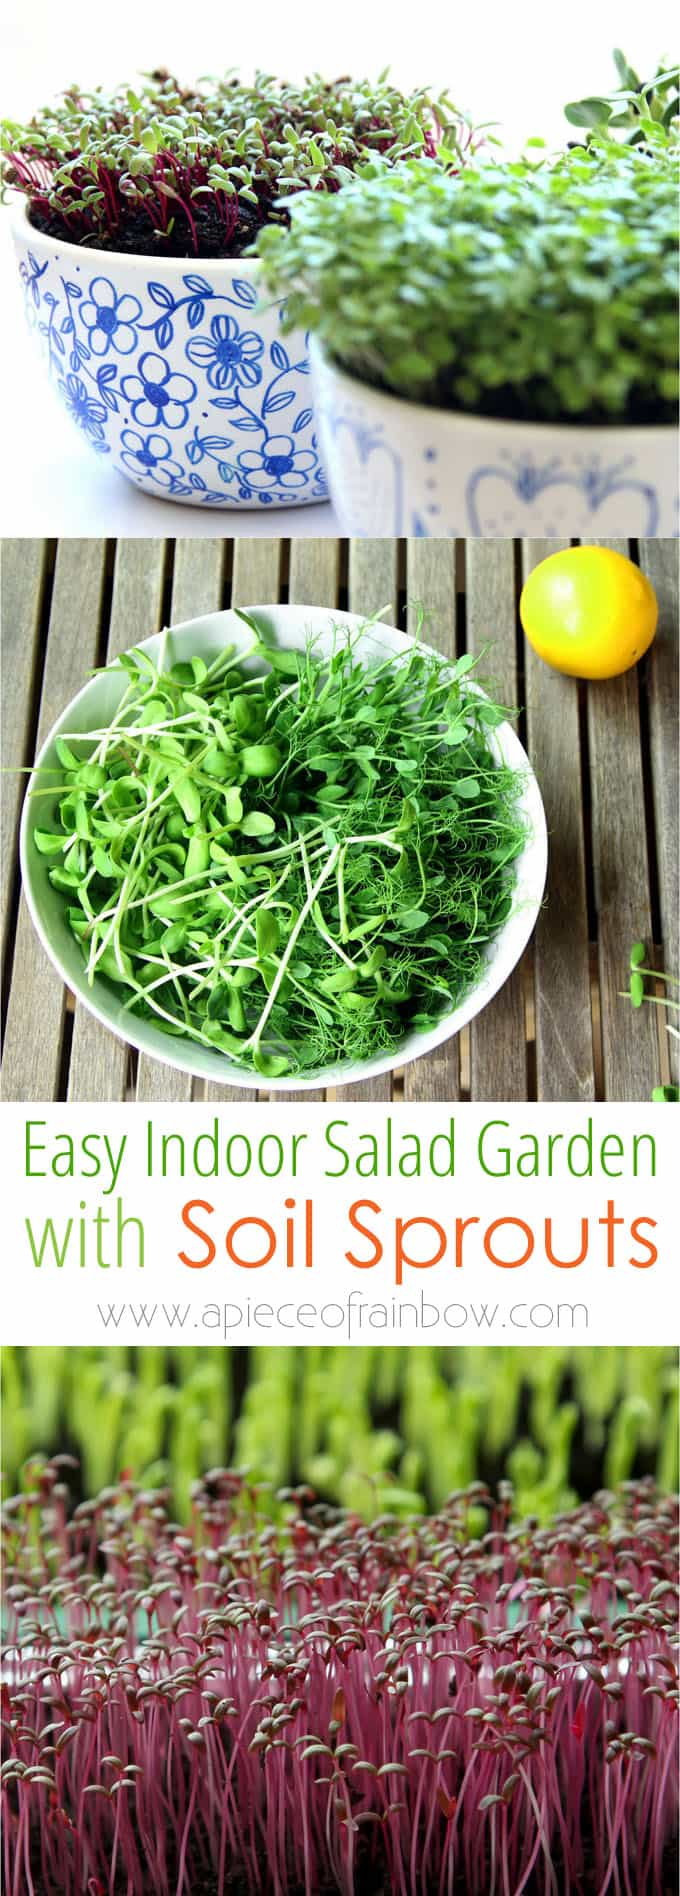 Grow an Indoor Salad Garden with Soil Sprouts